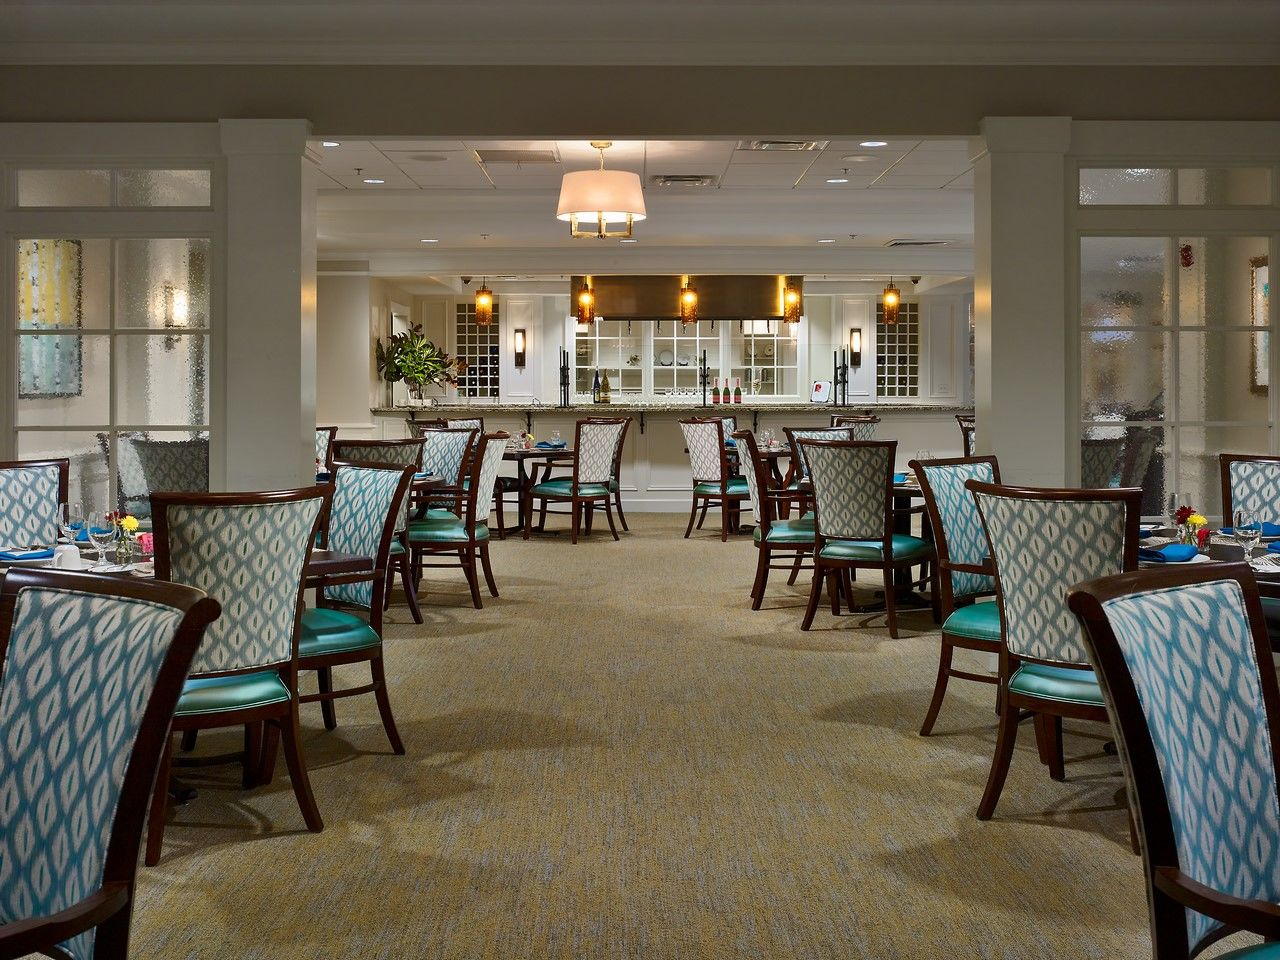 Still Hopes Episcopal Retirement Community | Renovation and Expansion Formal Dining